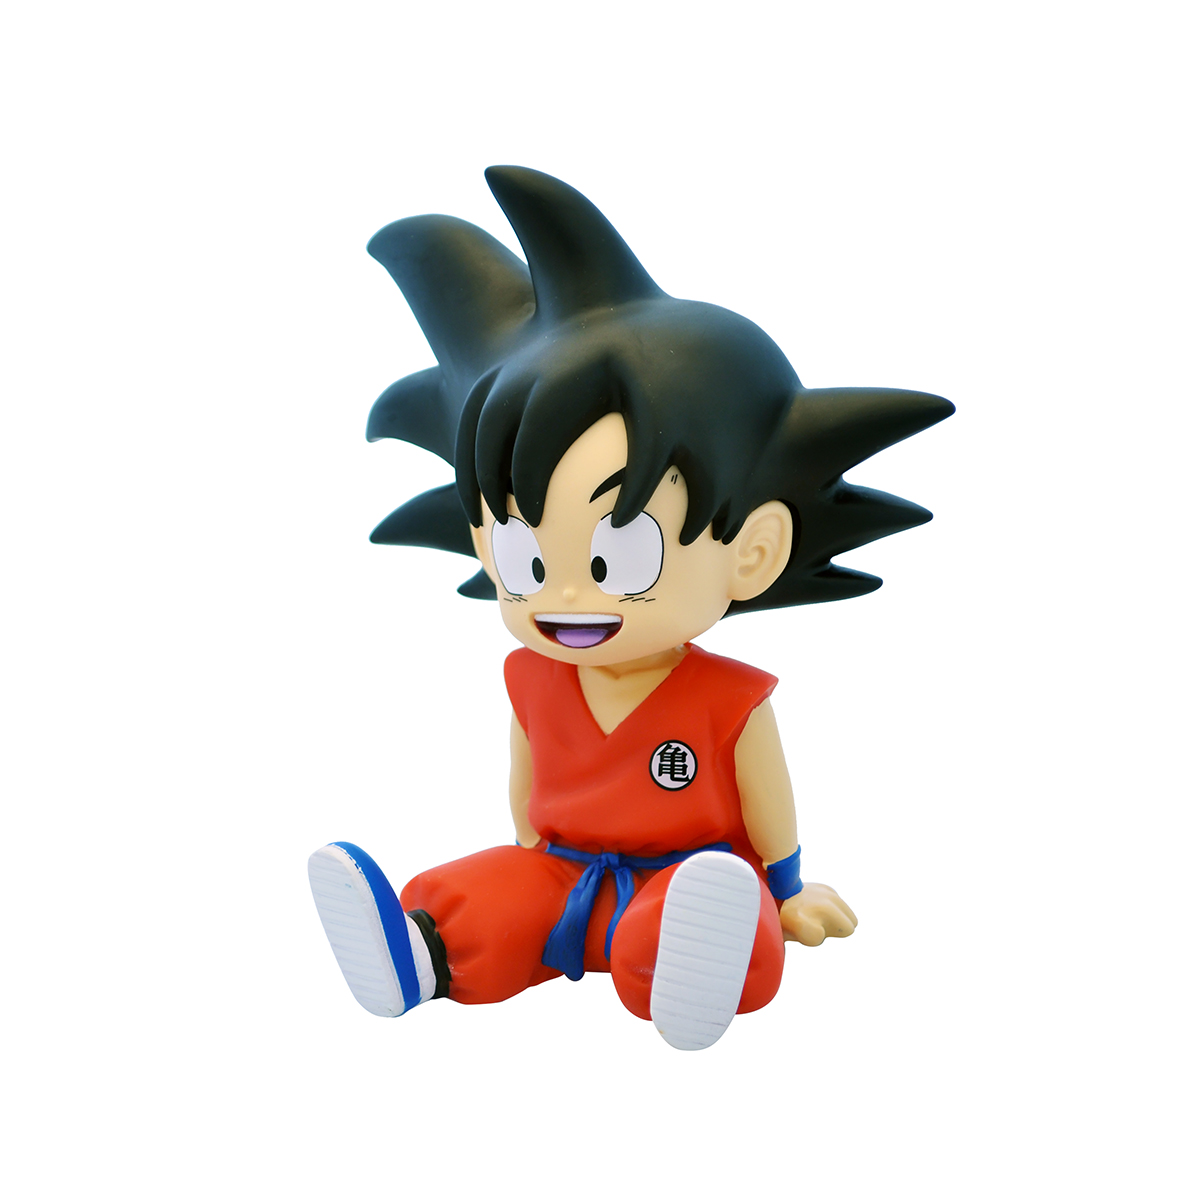 Dragon Ball Z moneybox